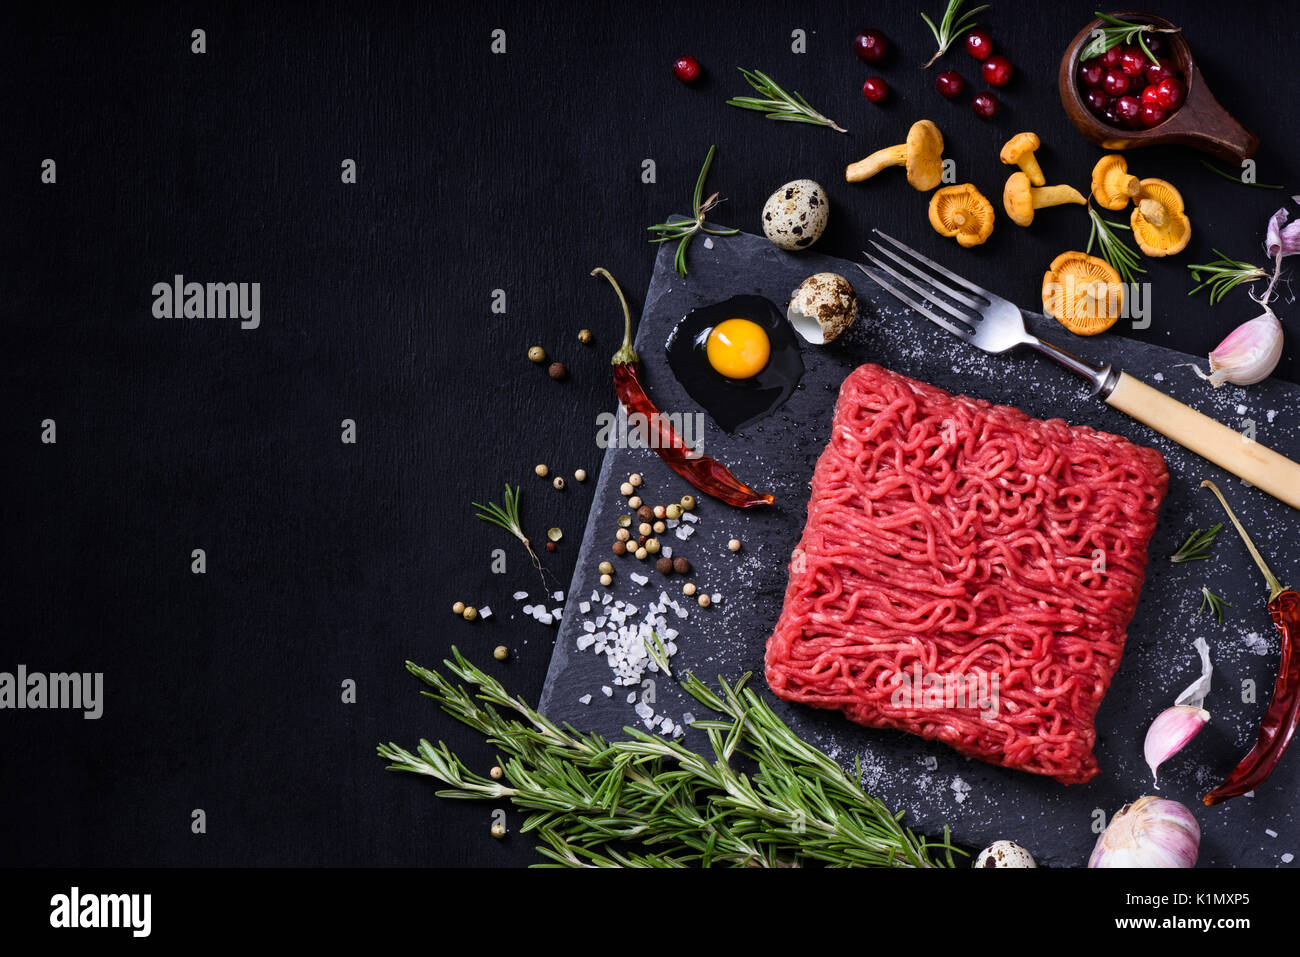 Tasty raw veal or beef meat on black table. Cooking ingredients with ground meat. Top view, copy space. Stock Photo